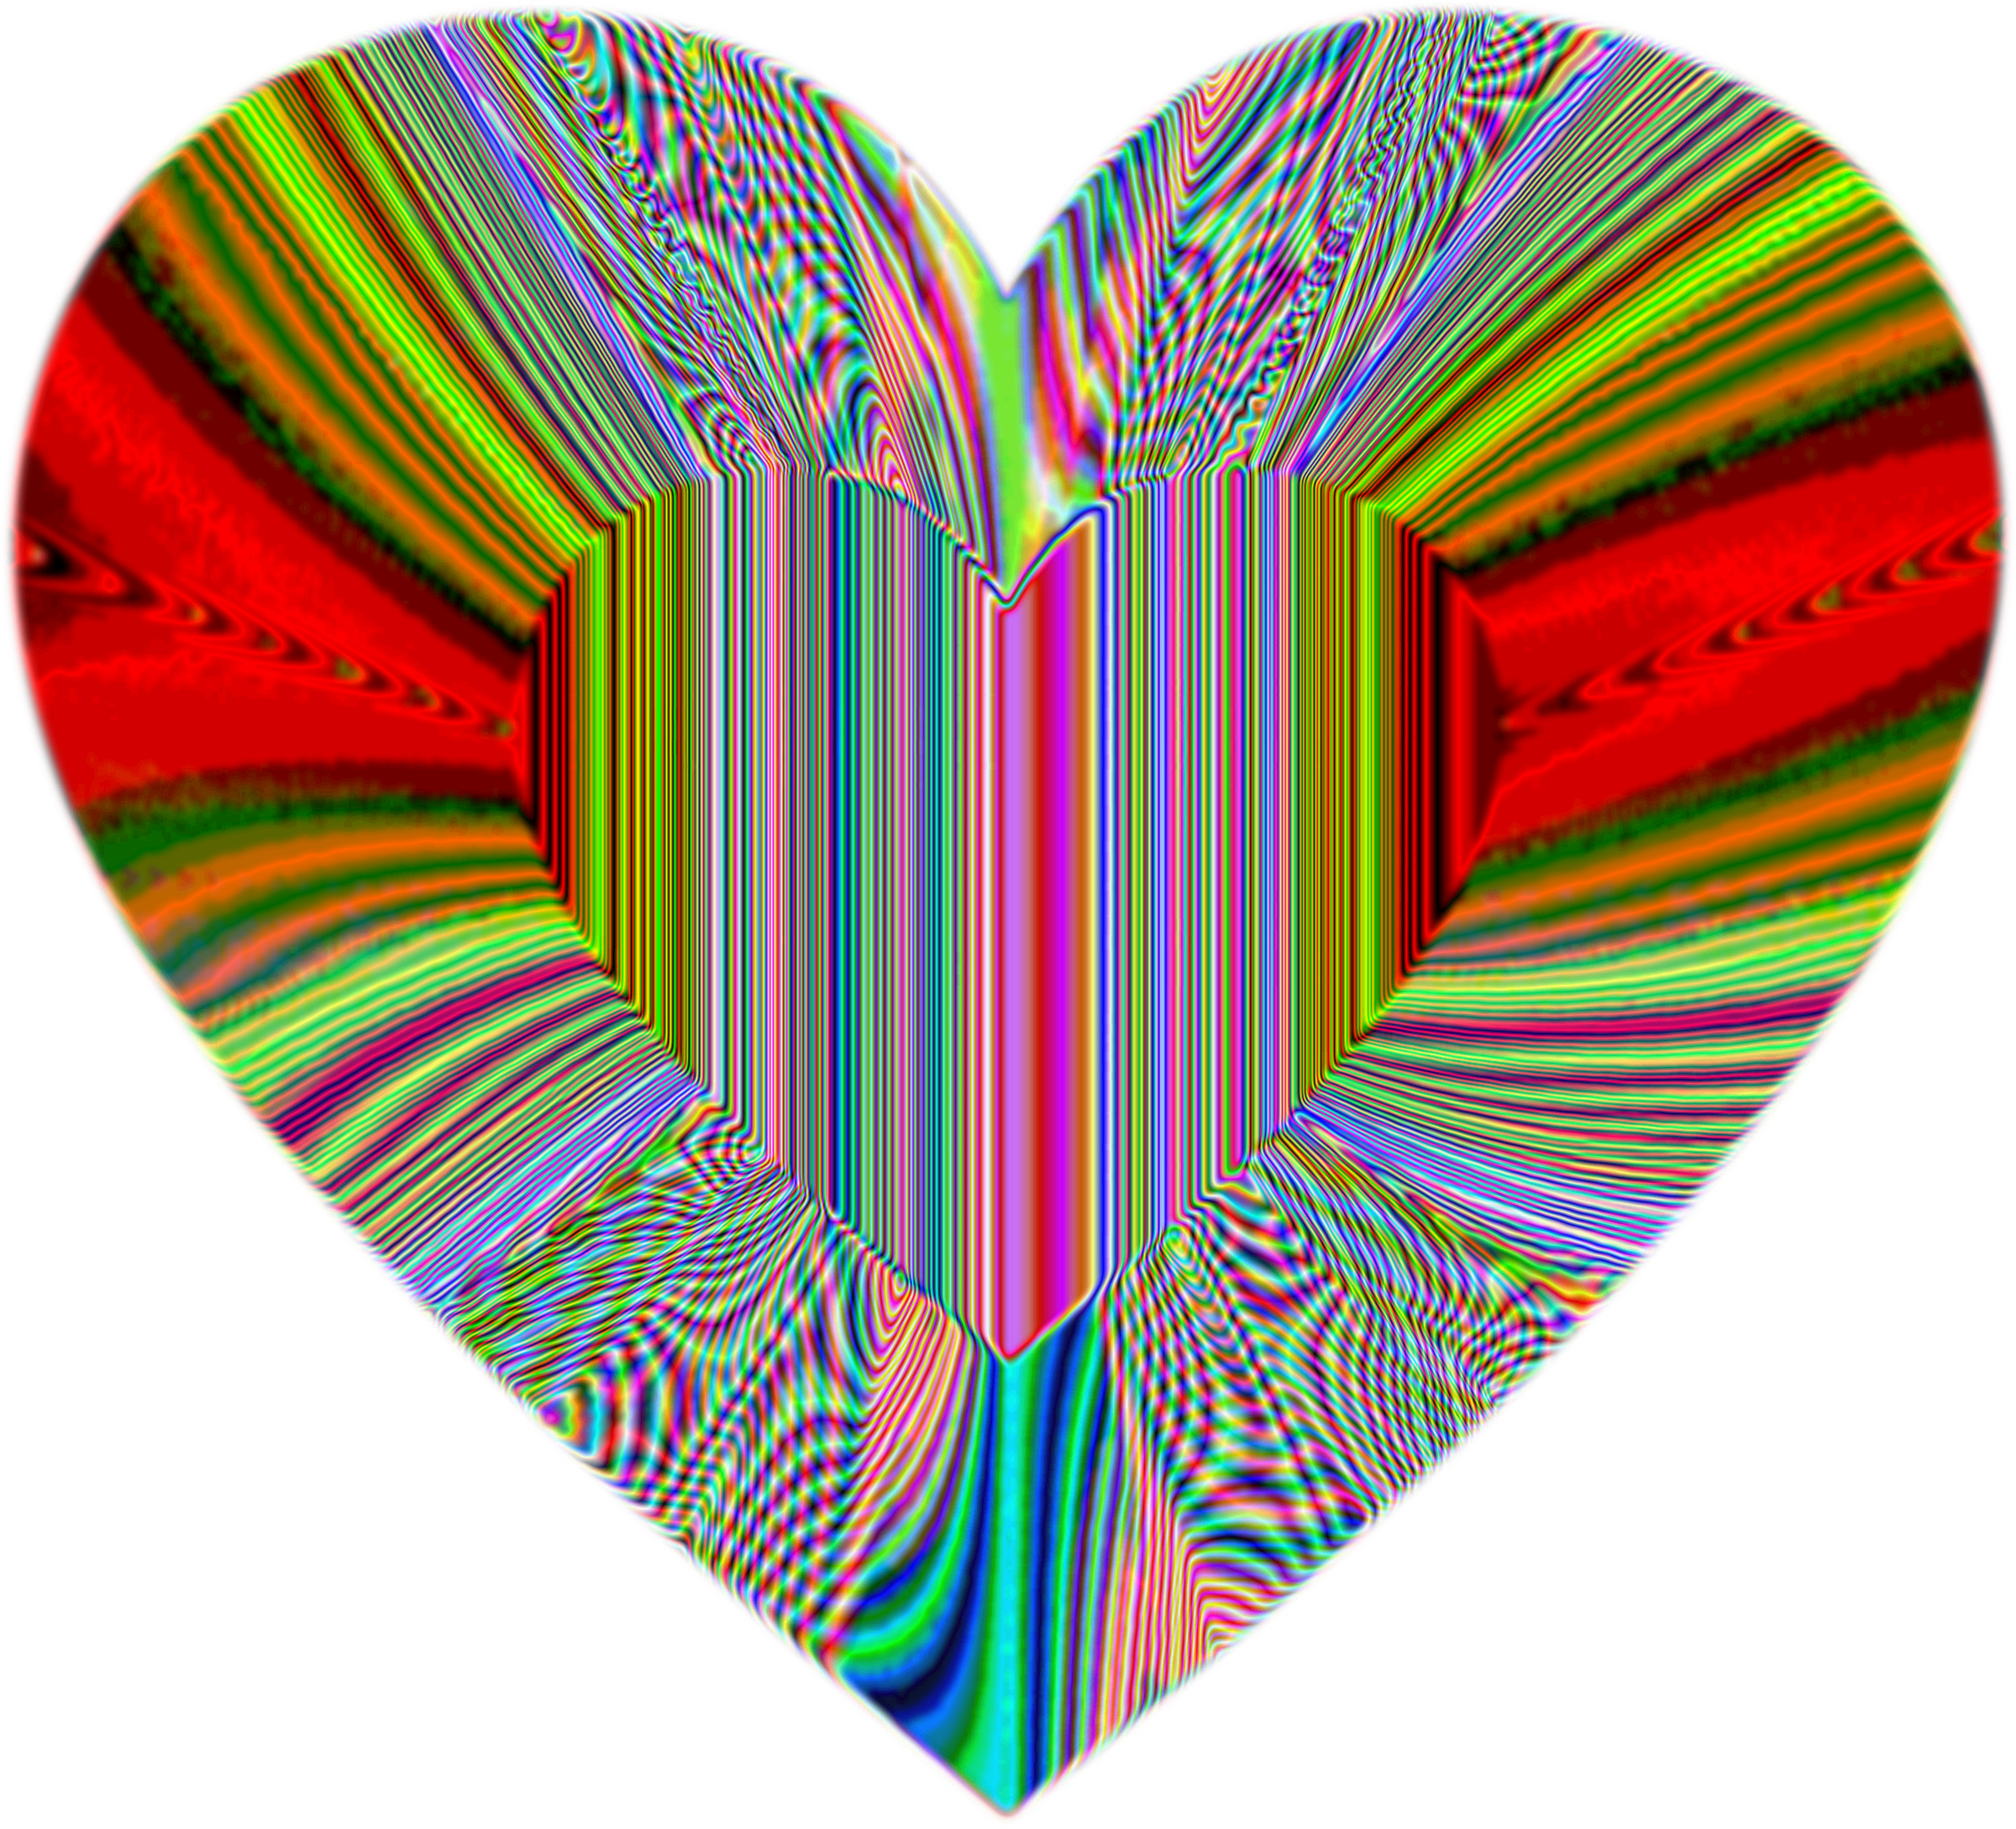 Colorful Refraction Heart Psychedelic by GDJ